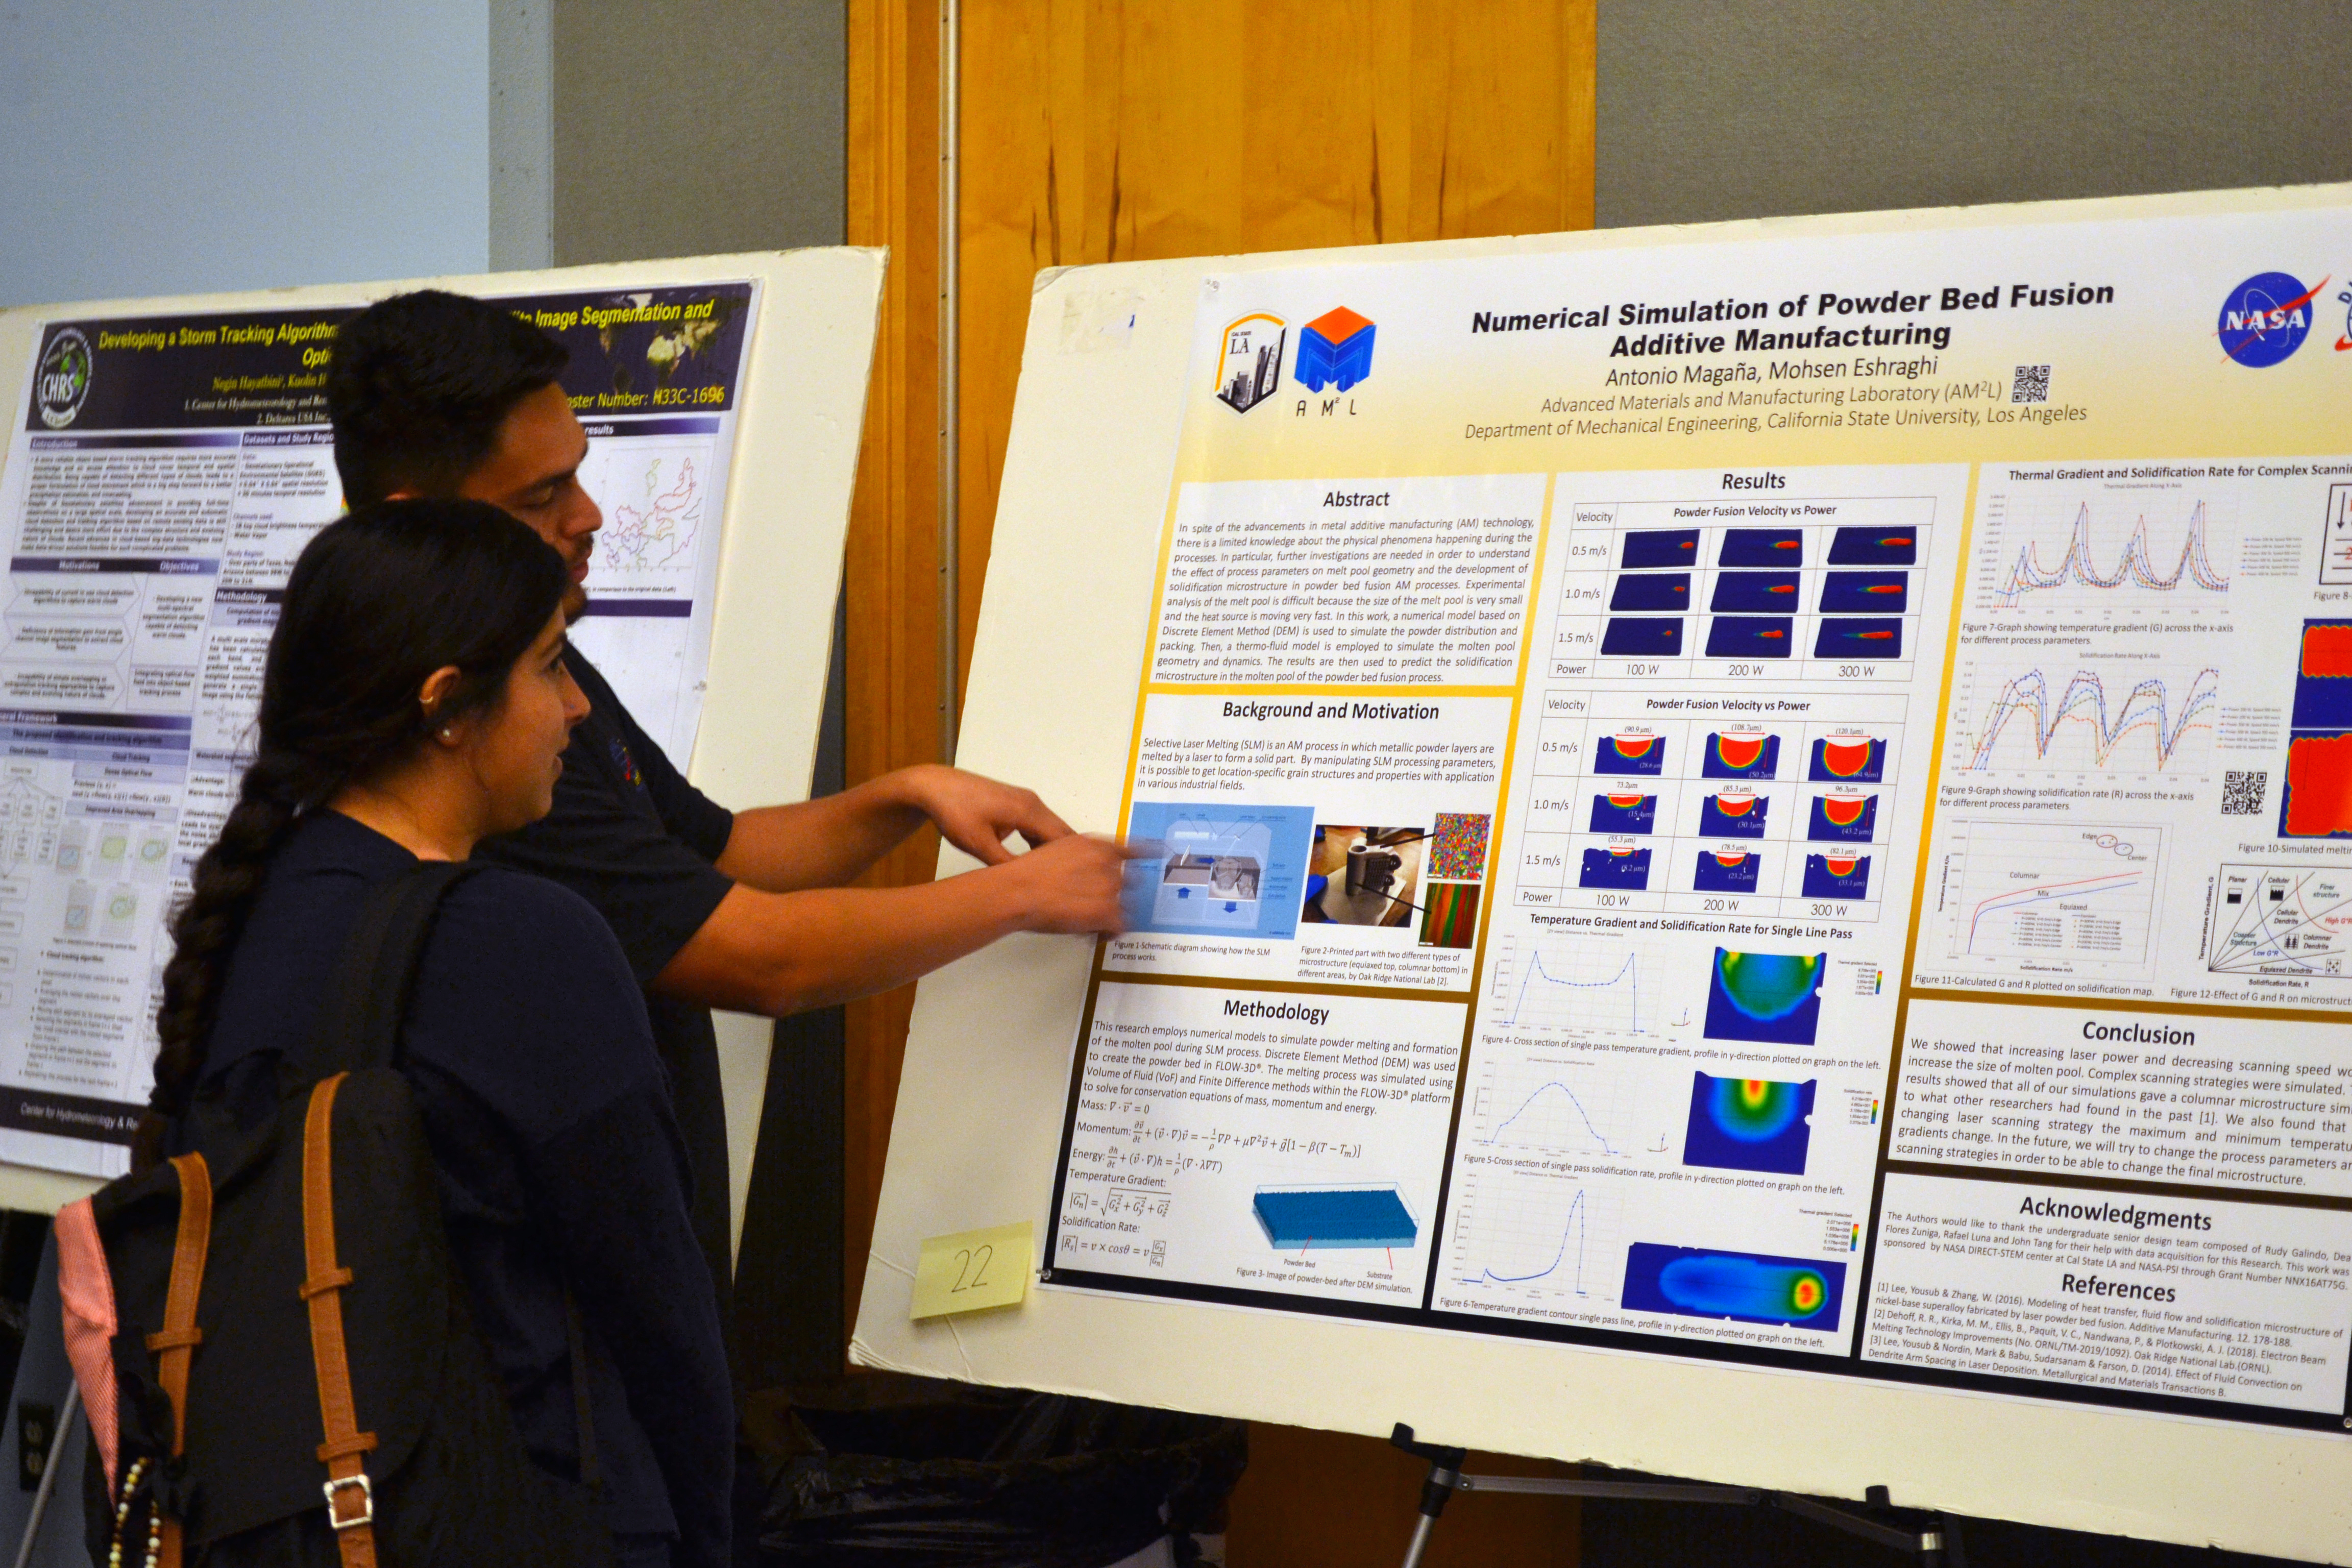 Antonio Magana explaining his research poster at the 4th Annual NASA DIRECT-STEM Research Symposium